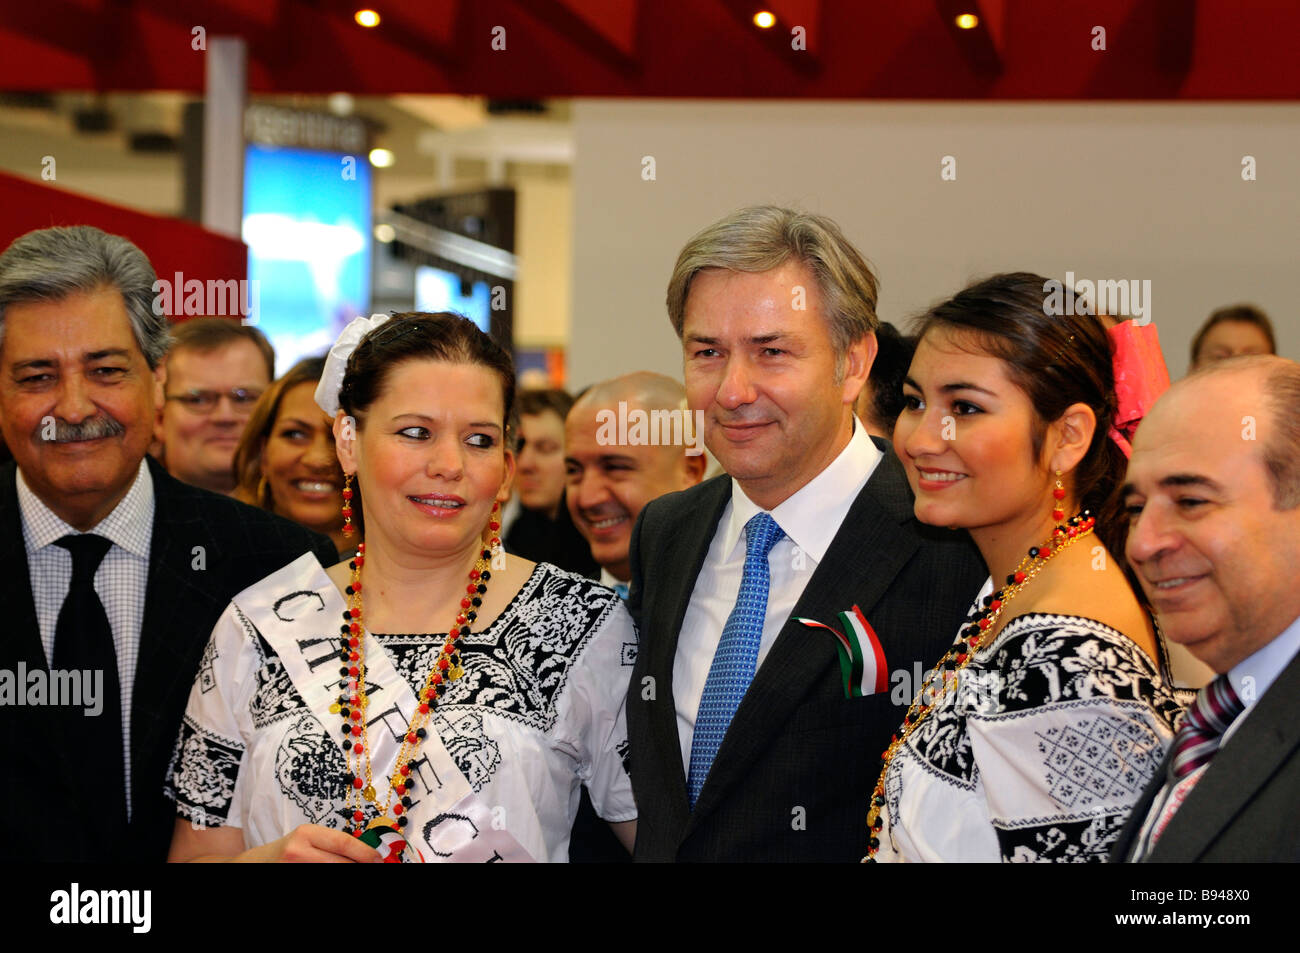 The mayor of Berlin Klaus Wowereit with two Mexican ladies on his side at the International Tourism Bourse ITB in - Stock Image